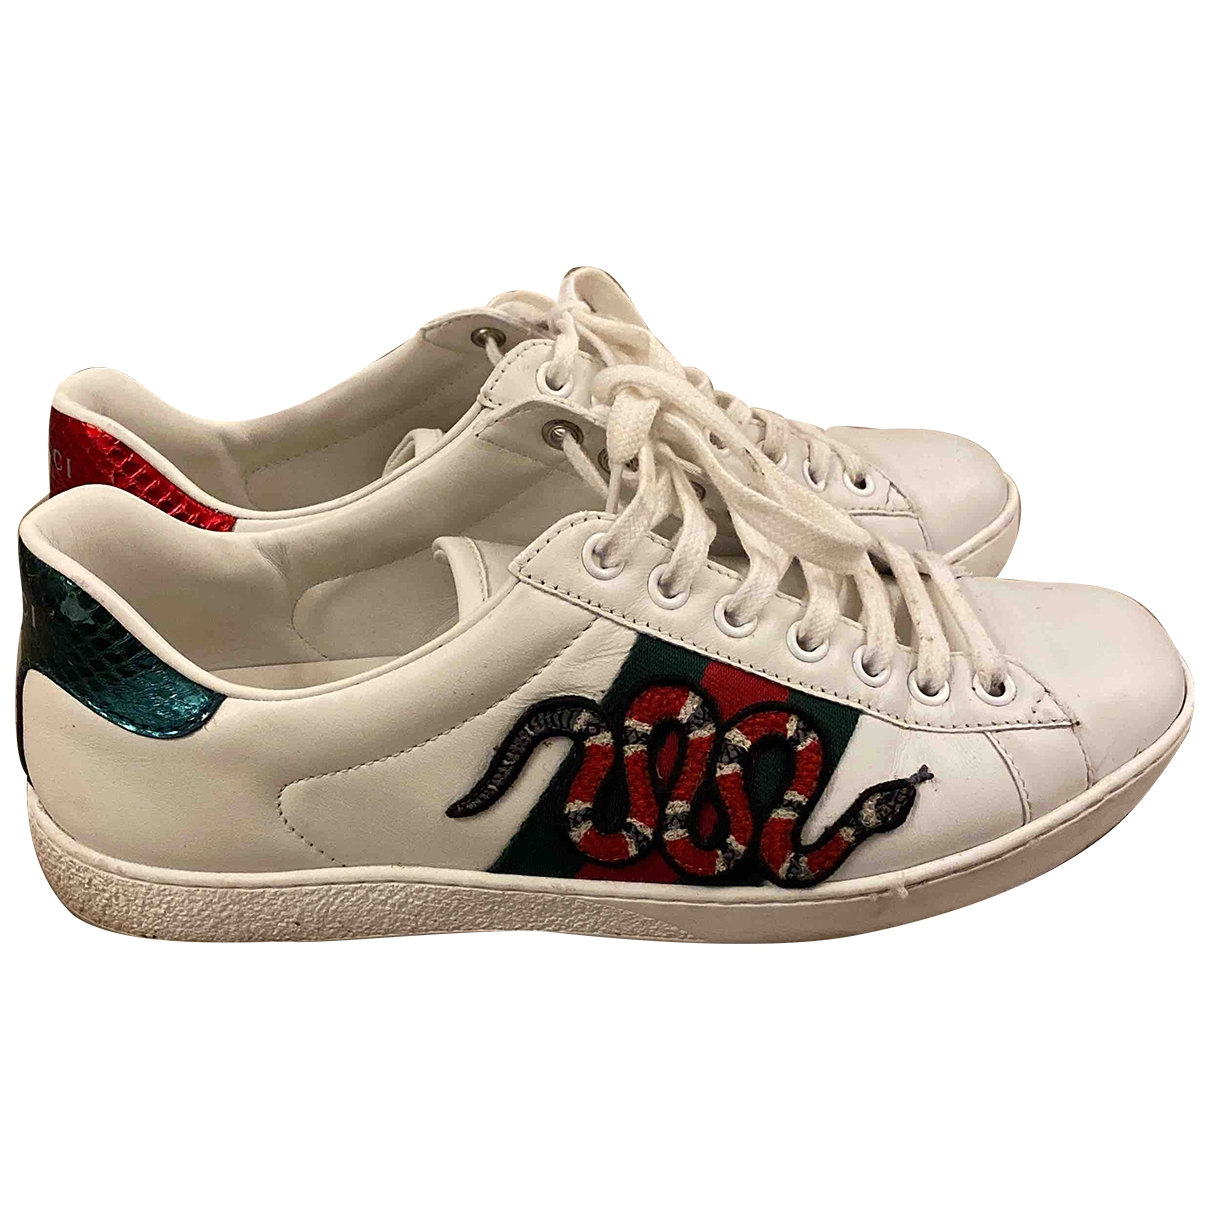 Gucci Ace White Leather Trainers for Men 5.5 UK